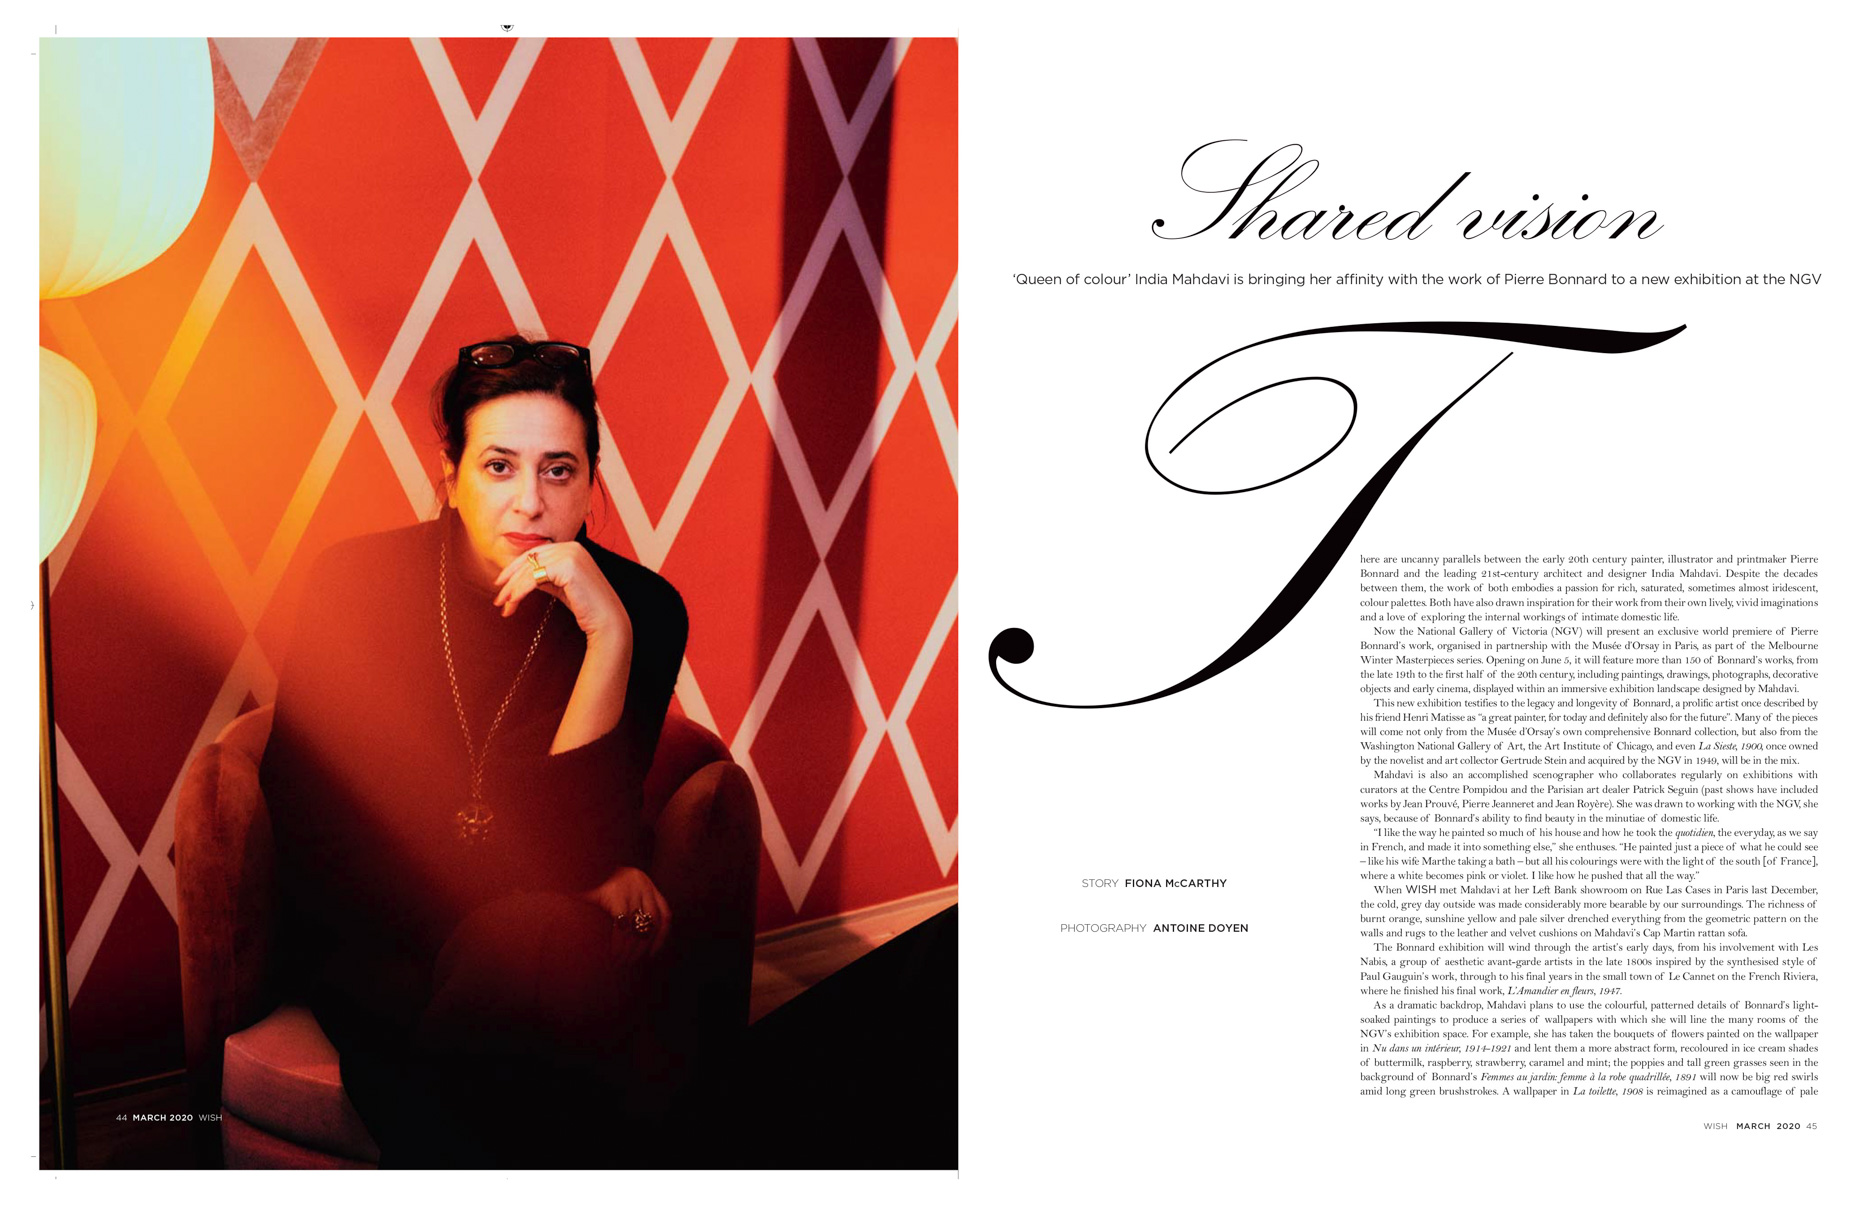 India Mahdavi - The Australian (Wish)